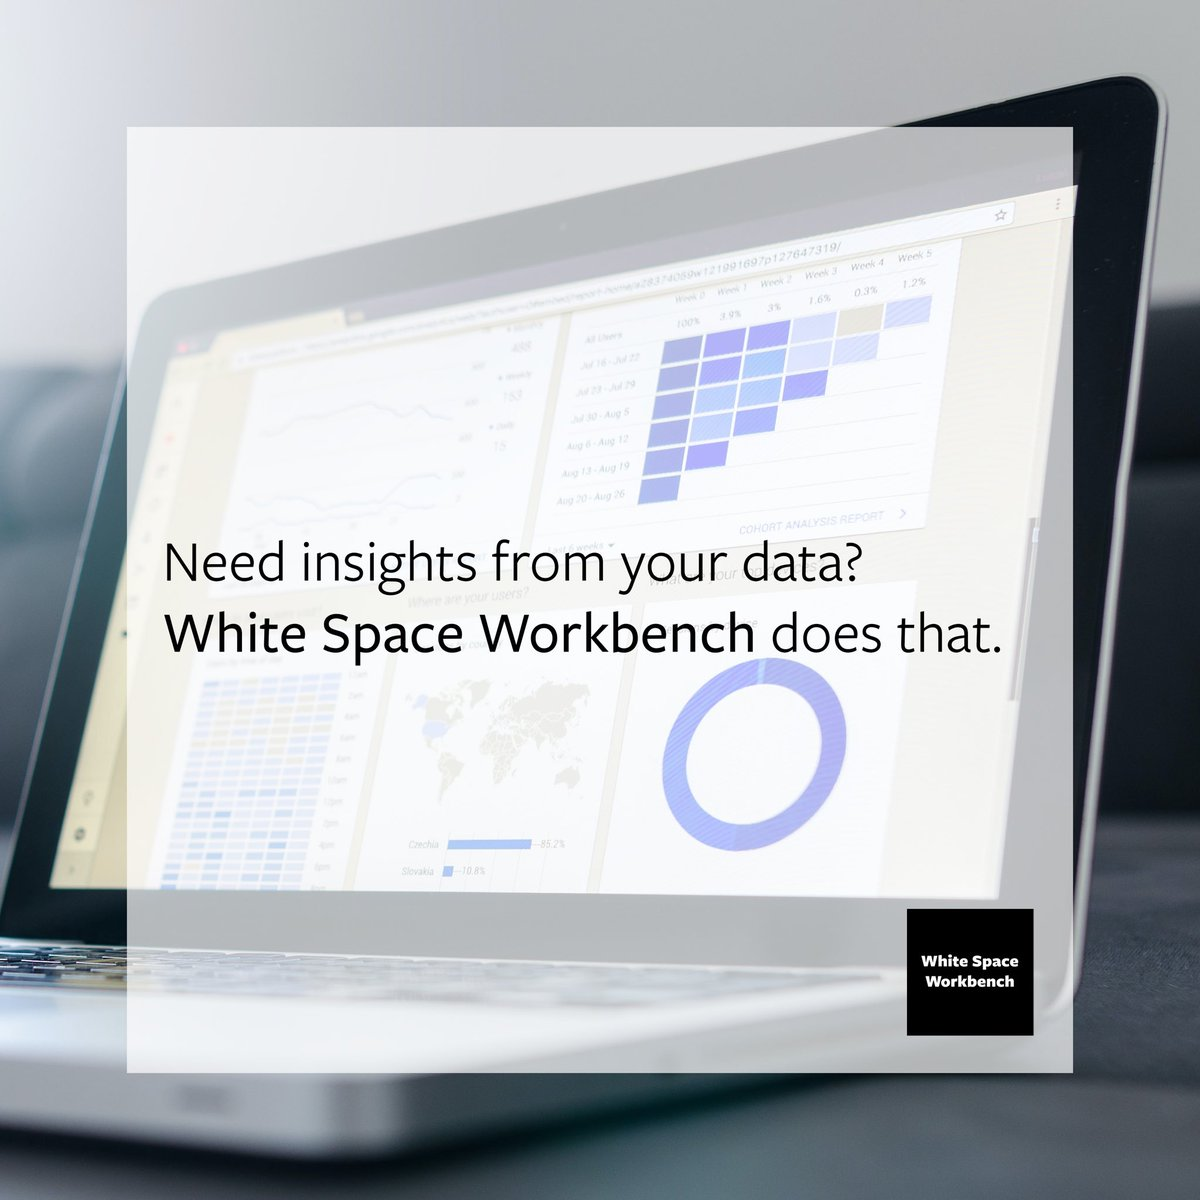 Data drives marketing. Your data tells the story of your customers - both individually and in total. White Space Workbench can help you unlock the power of your data and improve future marketing efforts.   #smallbusiness #marketing #data #smallbusinessmarketing